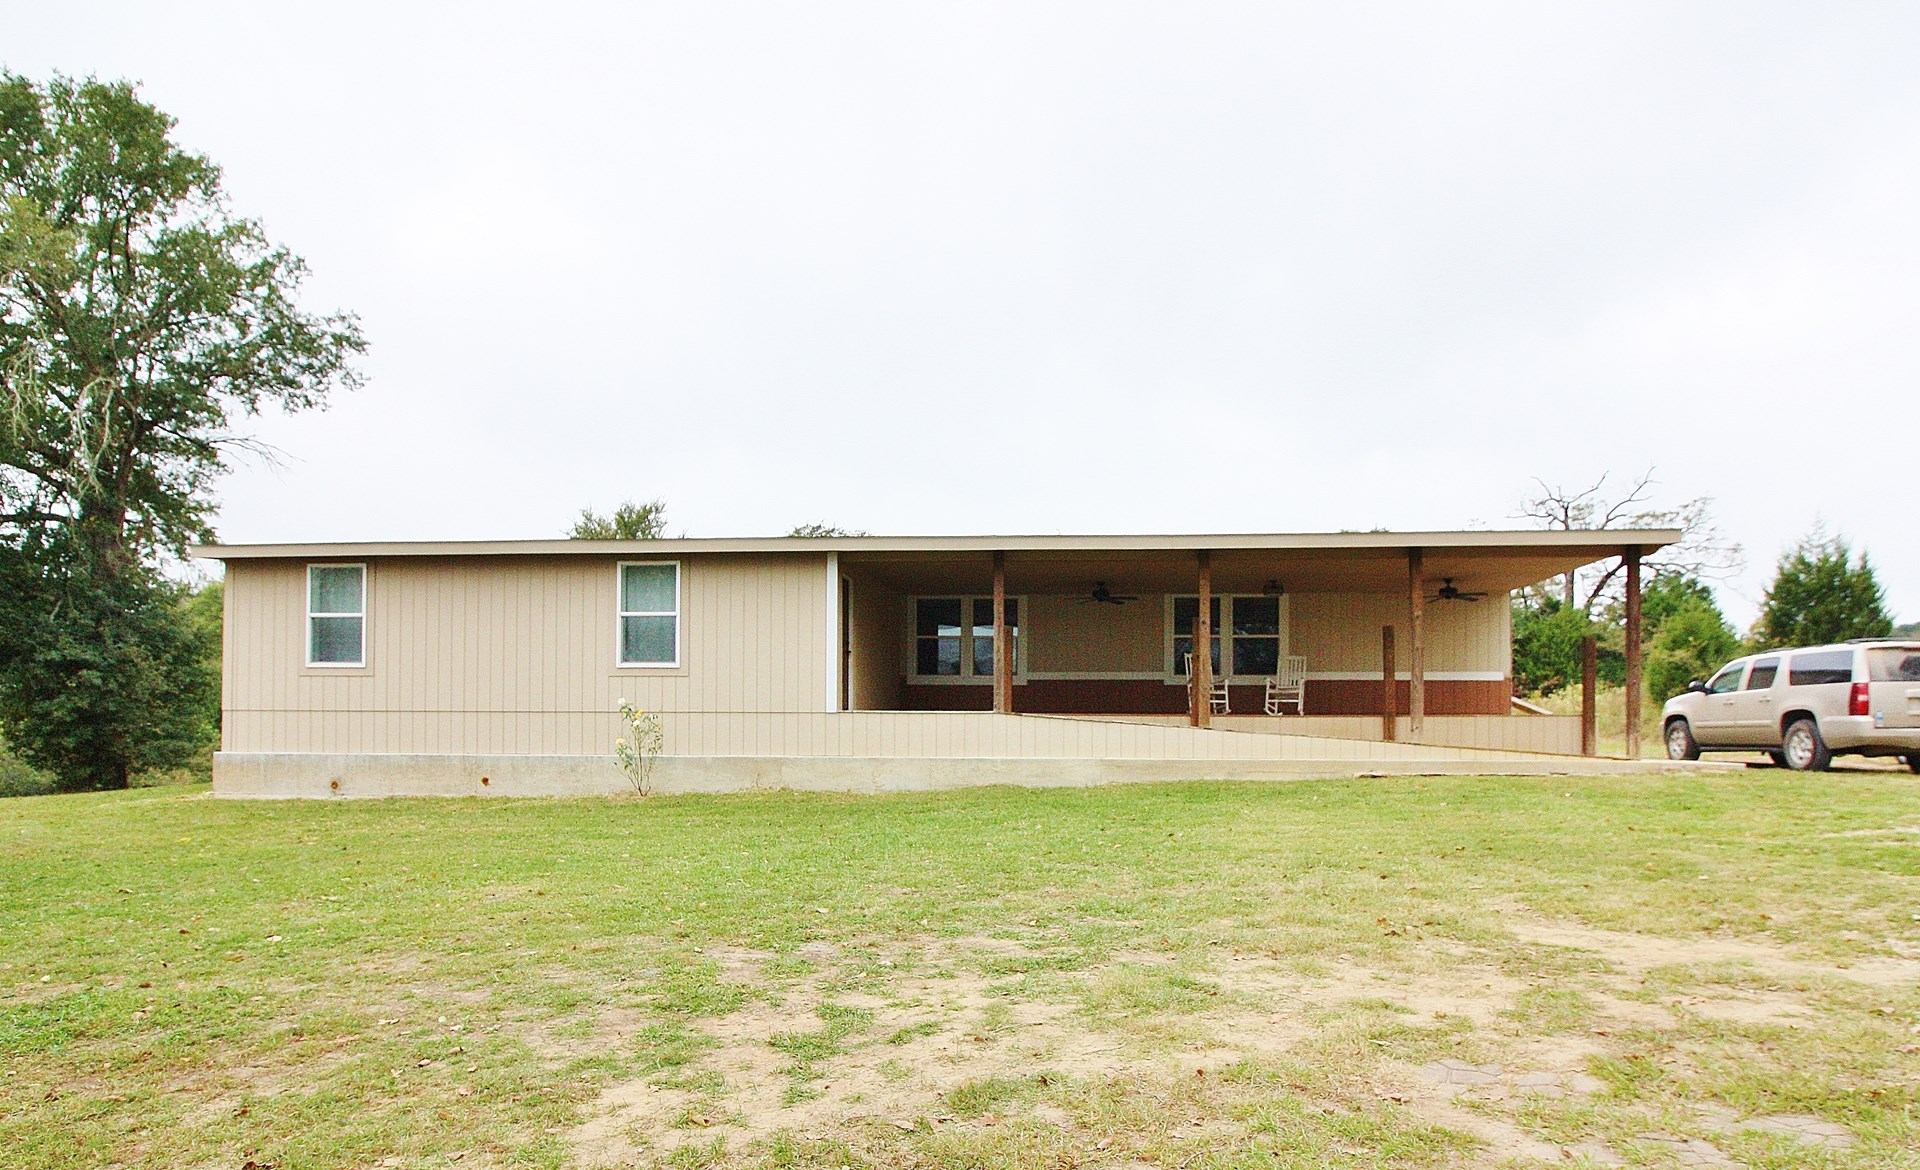 Two Homes on Acreage in Leon County, TX